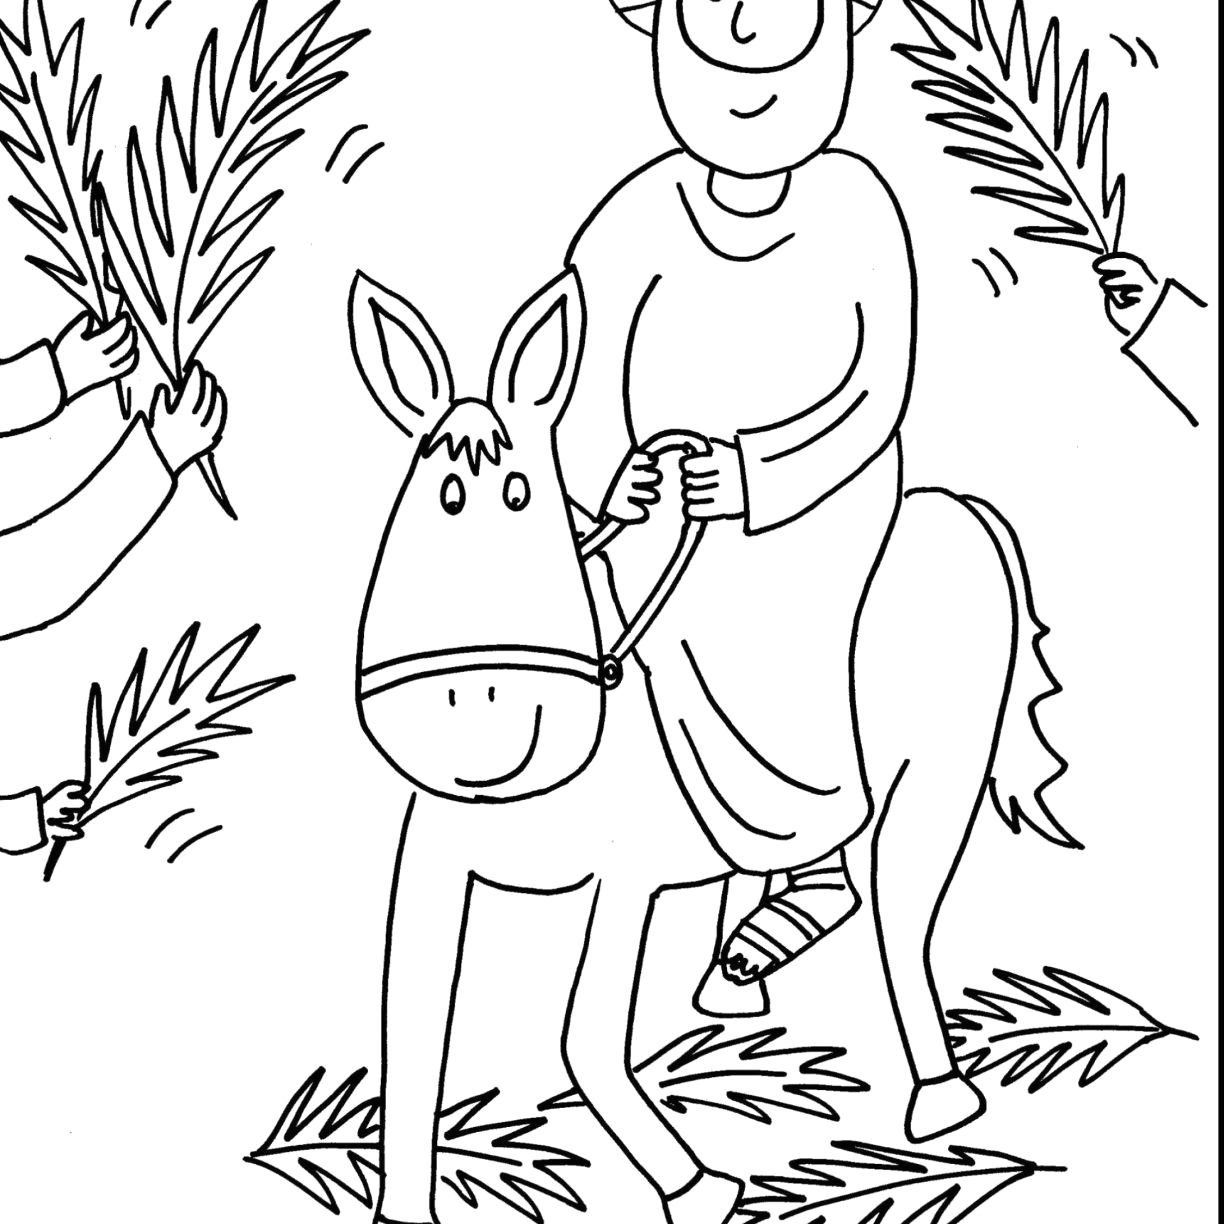 Free Christian Easter Coloring Pages for Preschoolers Religious Easter Coloring Pages for Preschoolers at